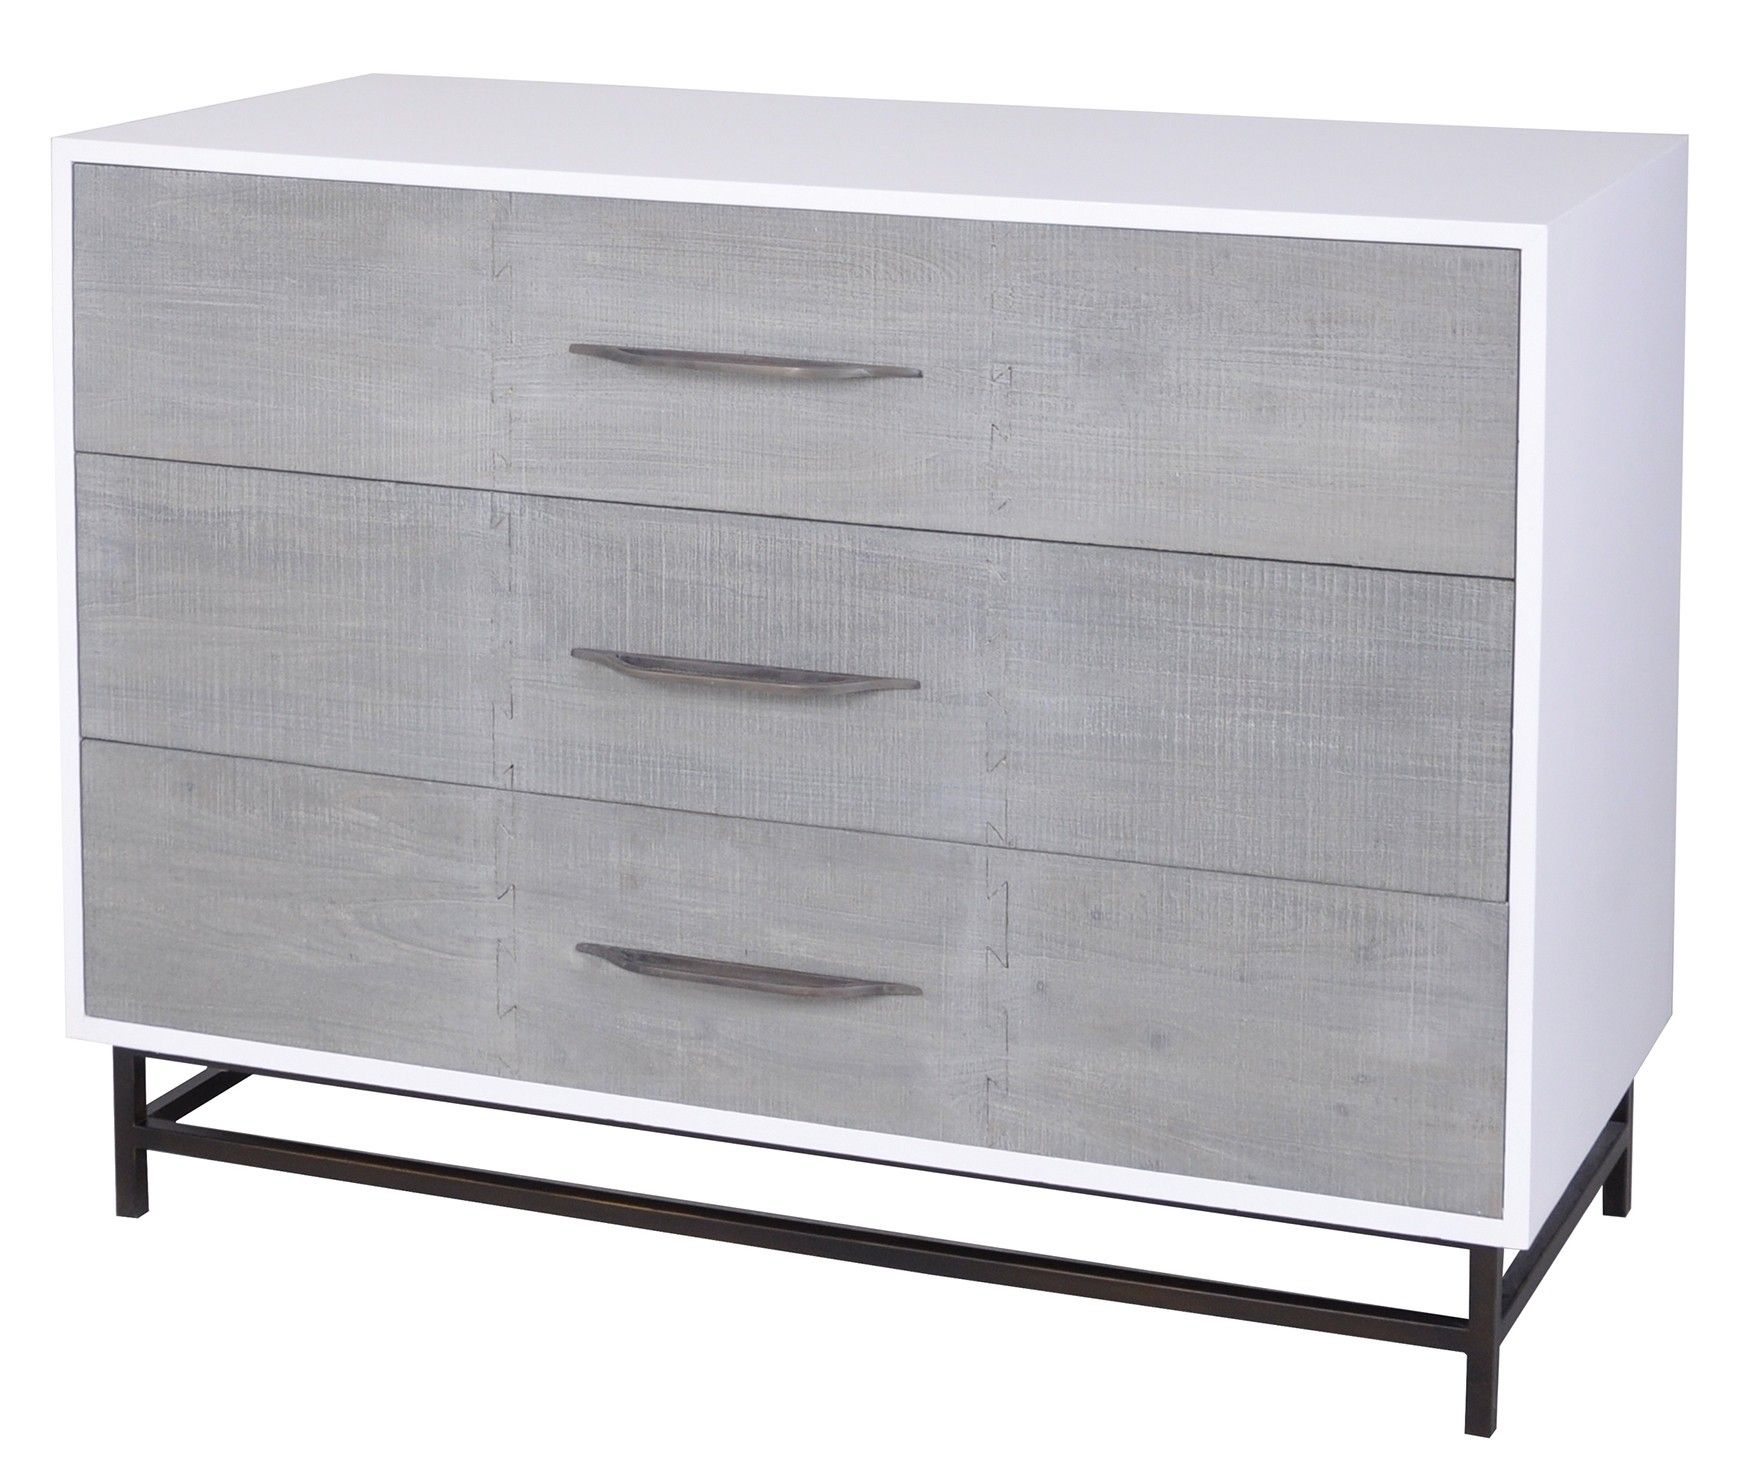 Weathered Wood Drawers Bring A Natural Texture To This Contemporary Storage Piece Framed In White And Featuri Three Drawer Dresser Wood Drawers 3 Drawer Chest